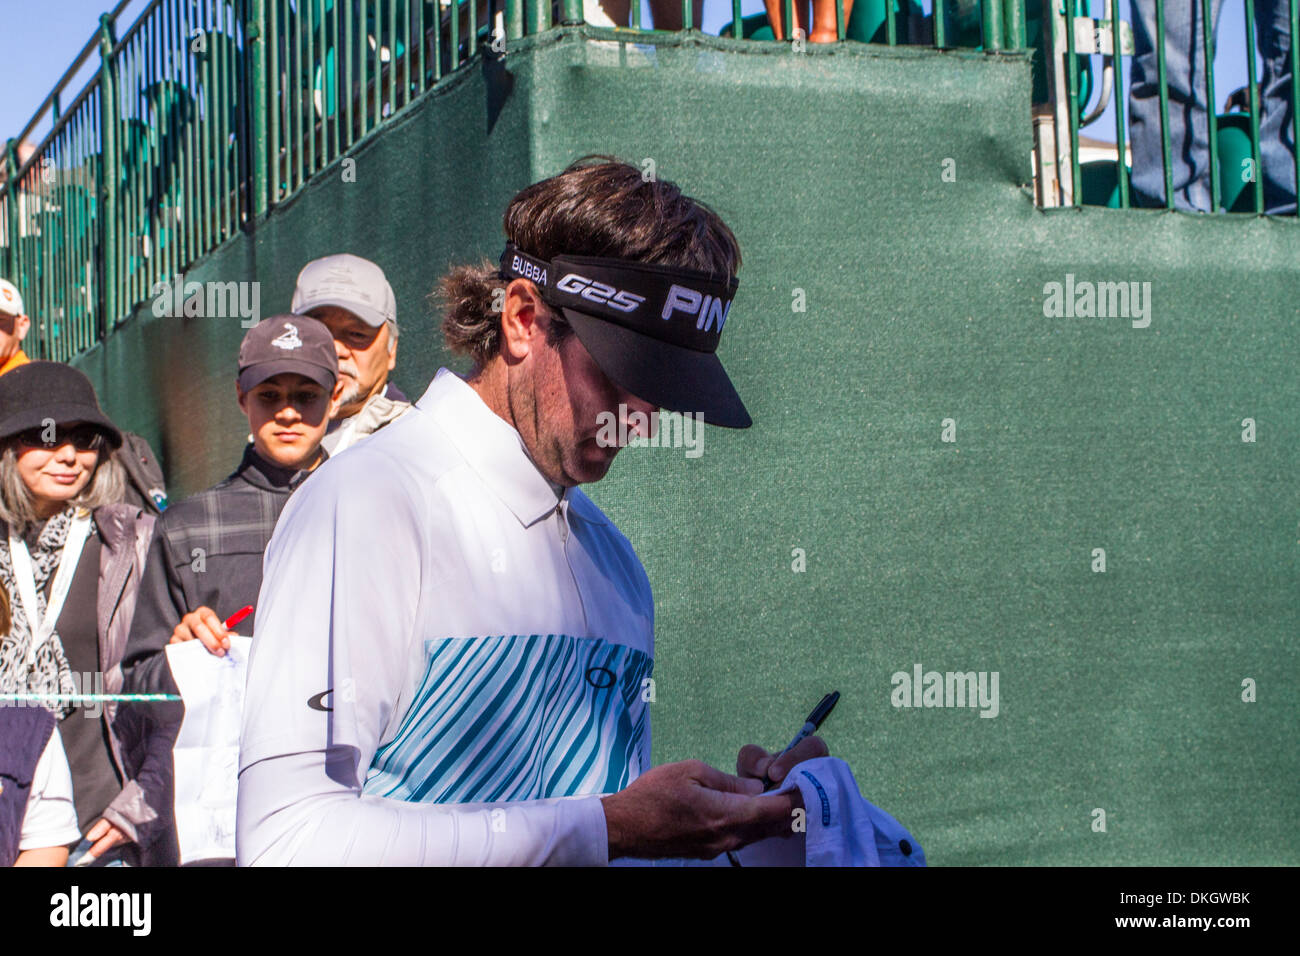 Bubba Watson at the 2013 Northwestern Mutual Challenge at Sherwood Country Club in Thousand Oaks California - Stock Image